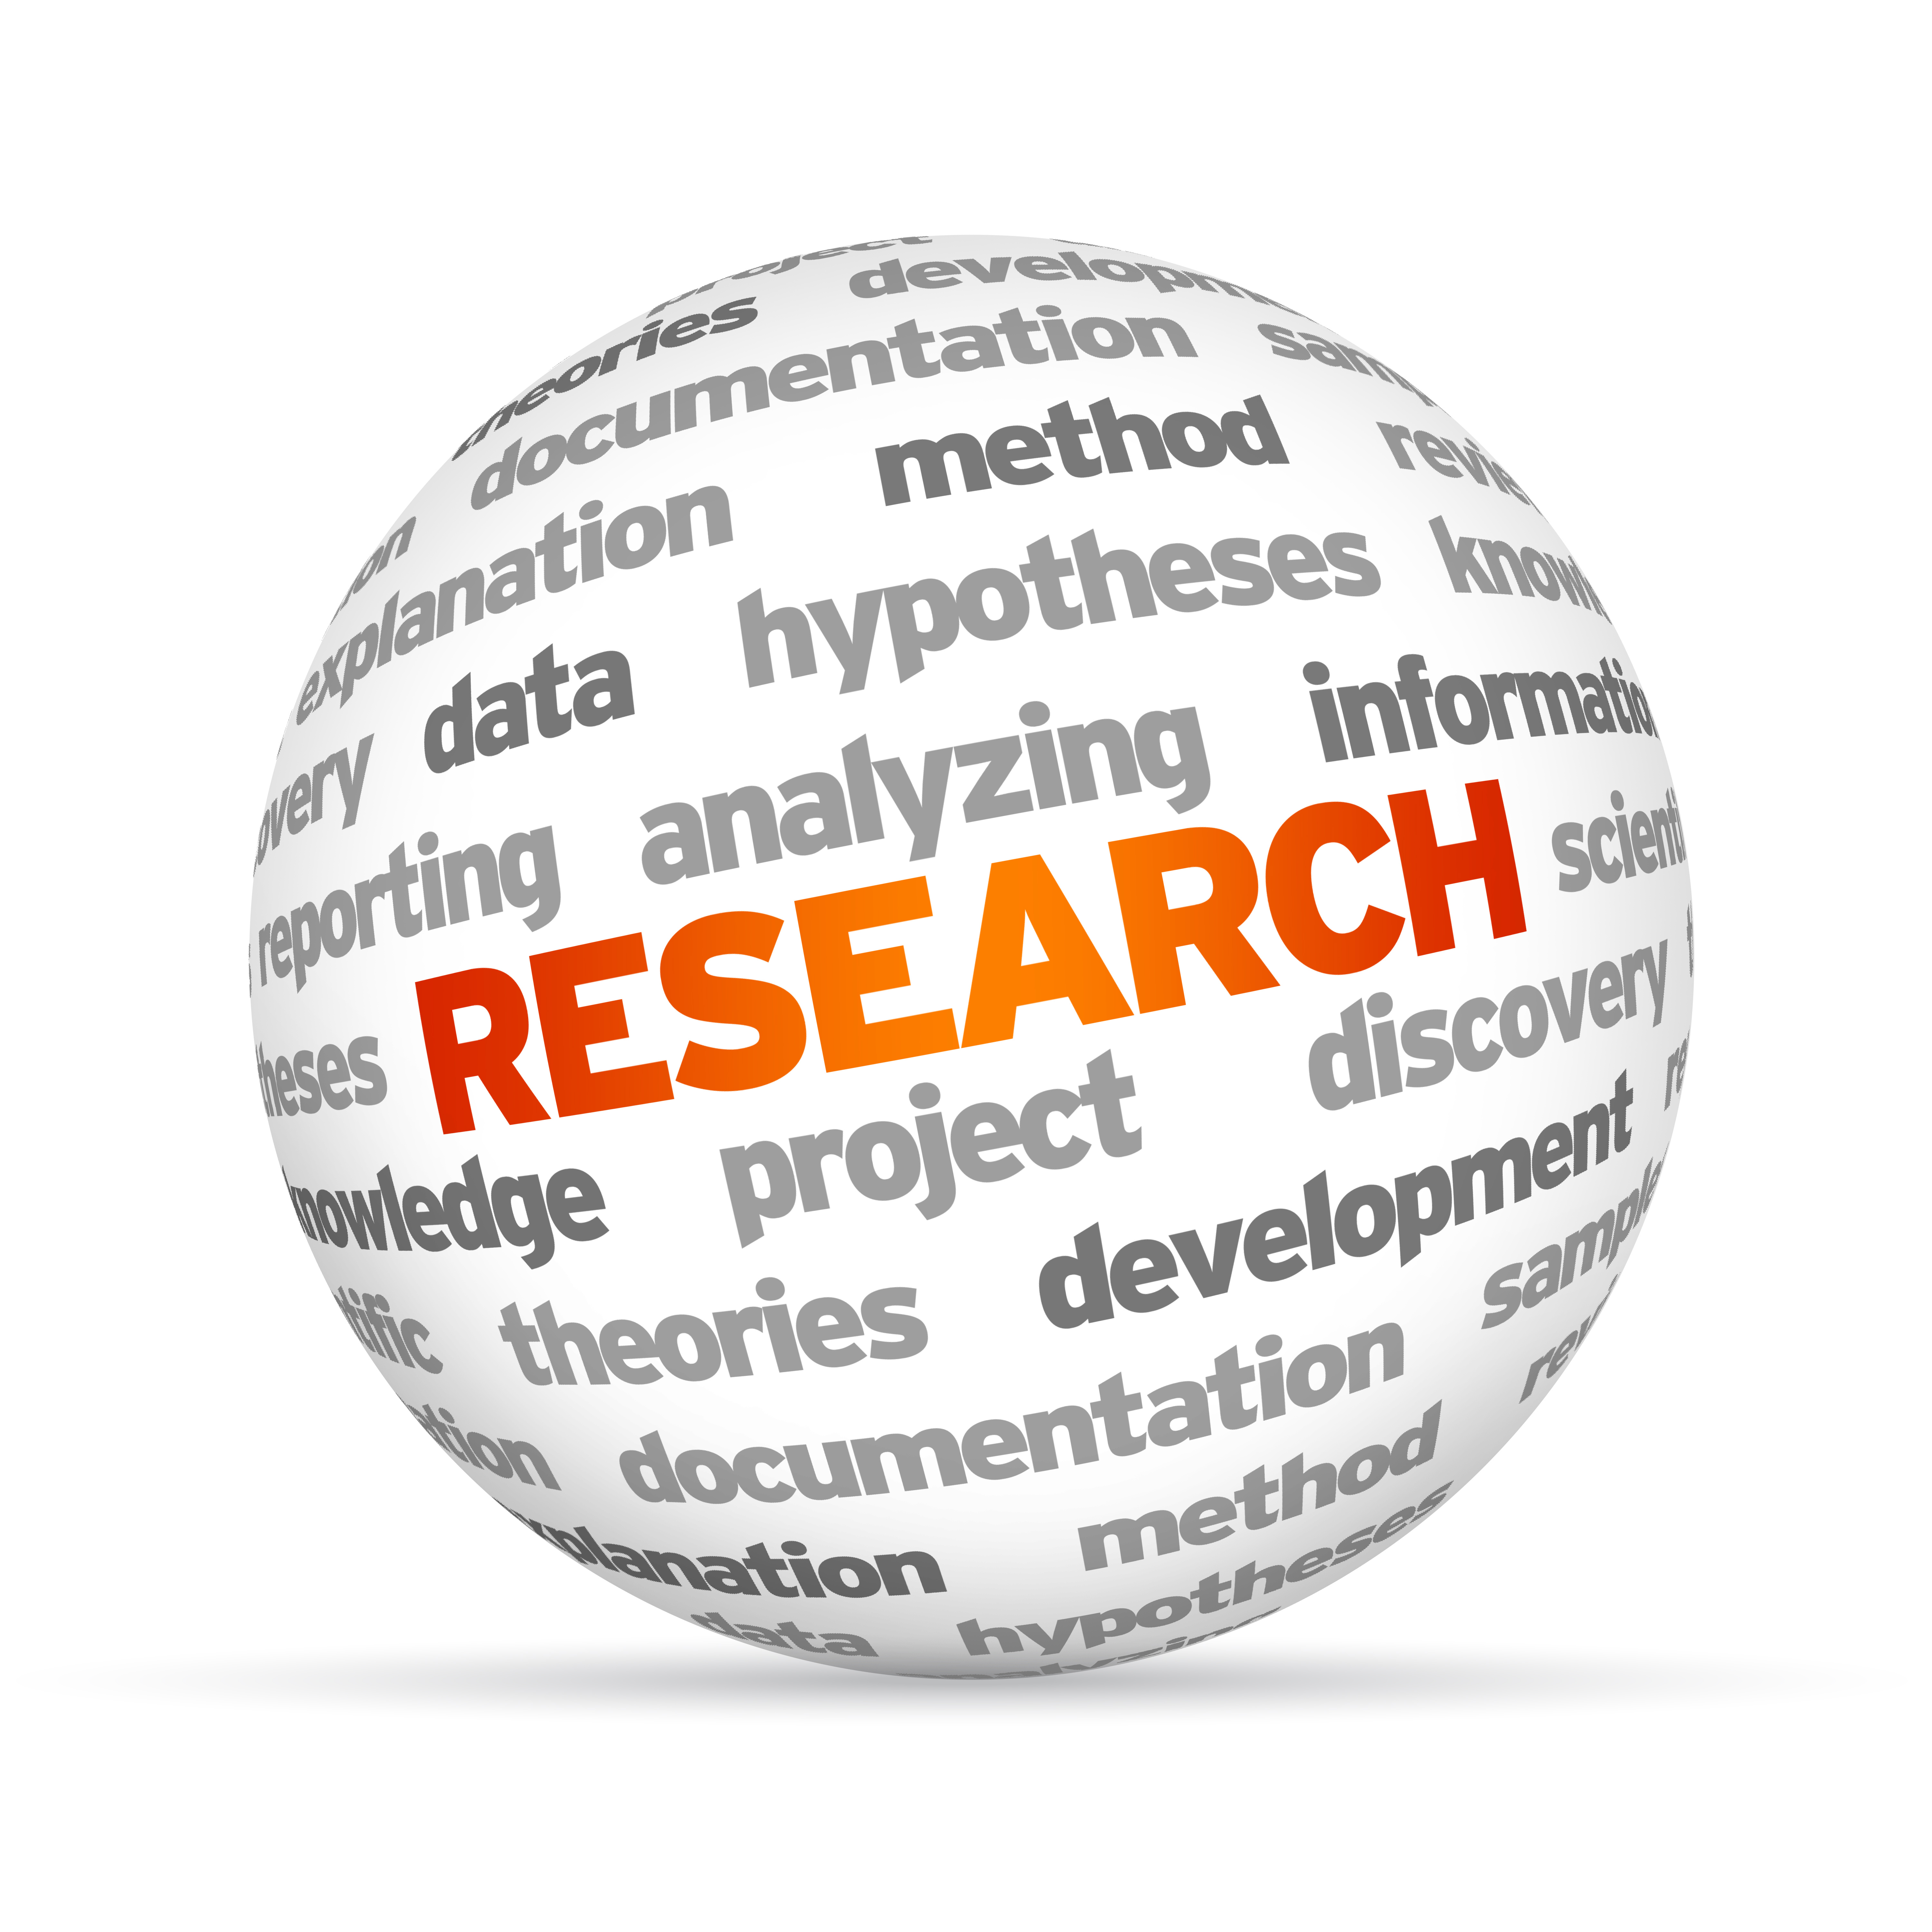 Web Design where to find research articles online